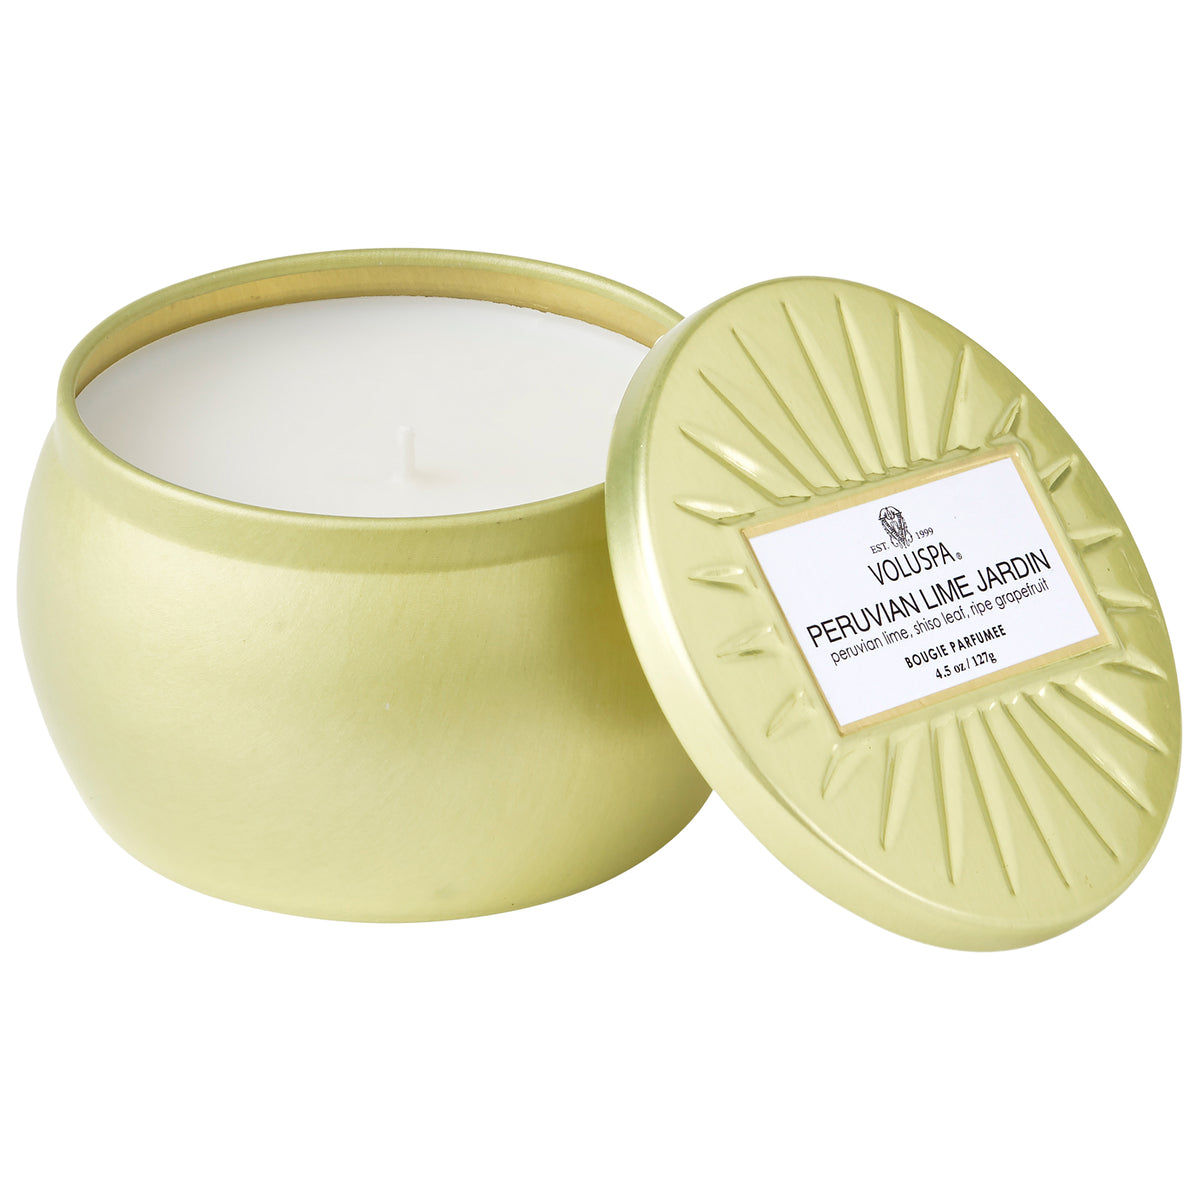 Peruvian Lime Jardin - Mini Tin Candle - 1